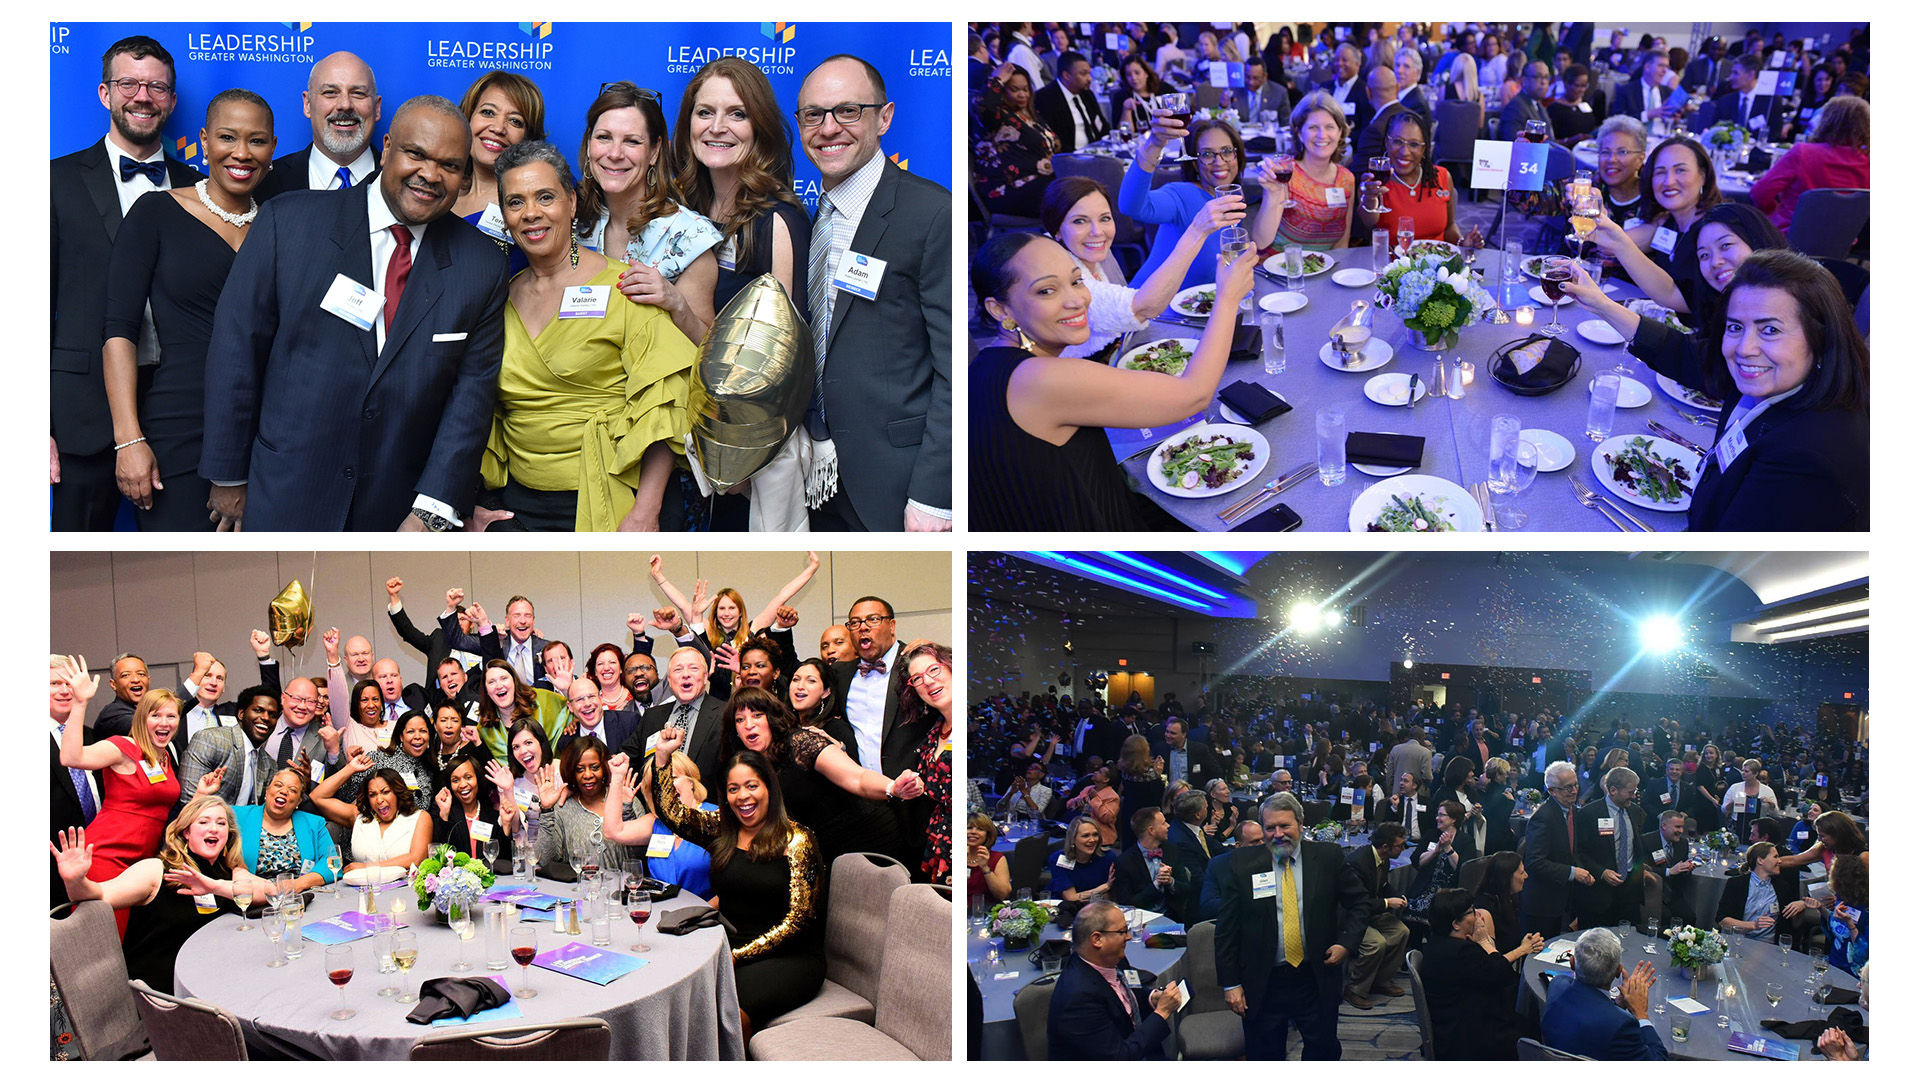 Top 5 Reasons to Attend the 2020 Leadership Awards Dinner